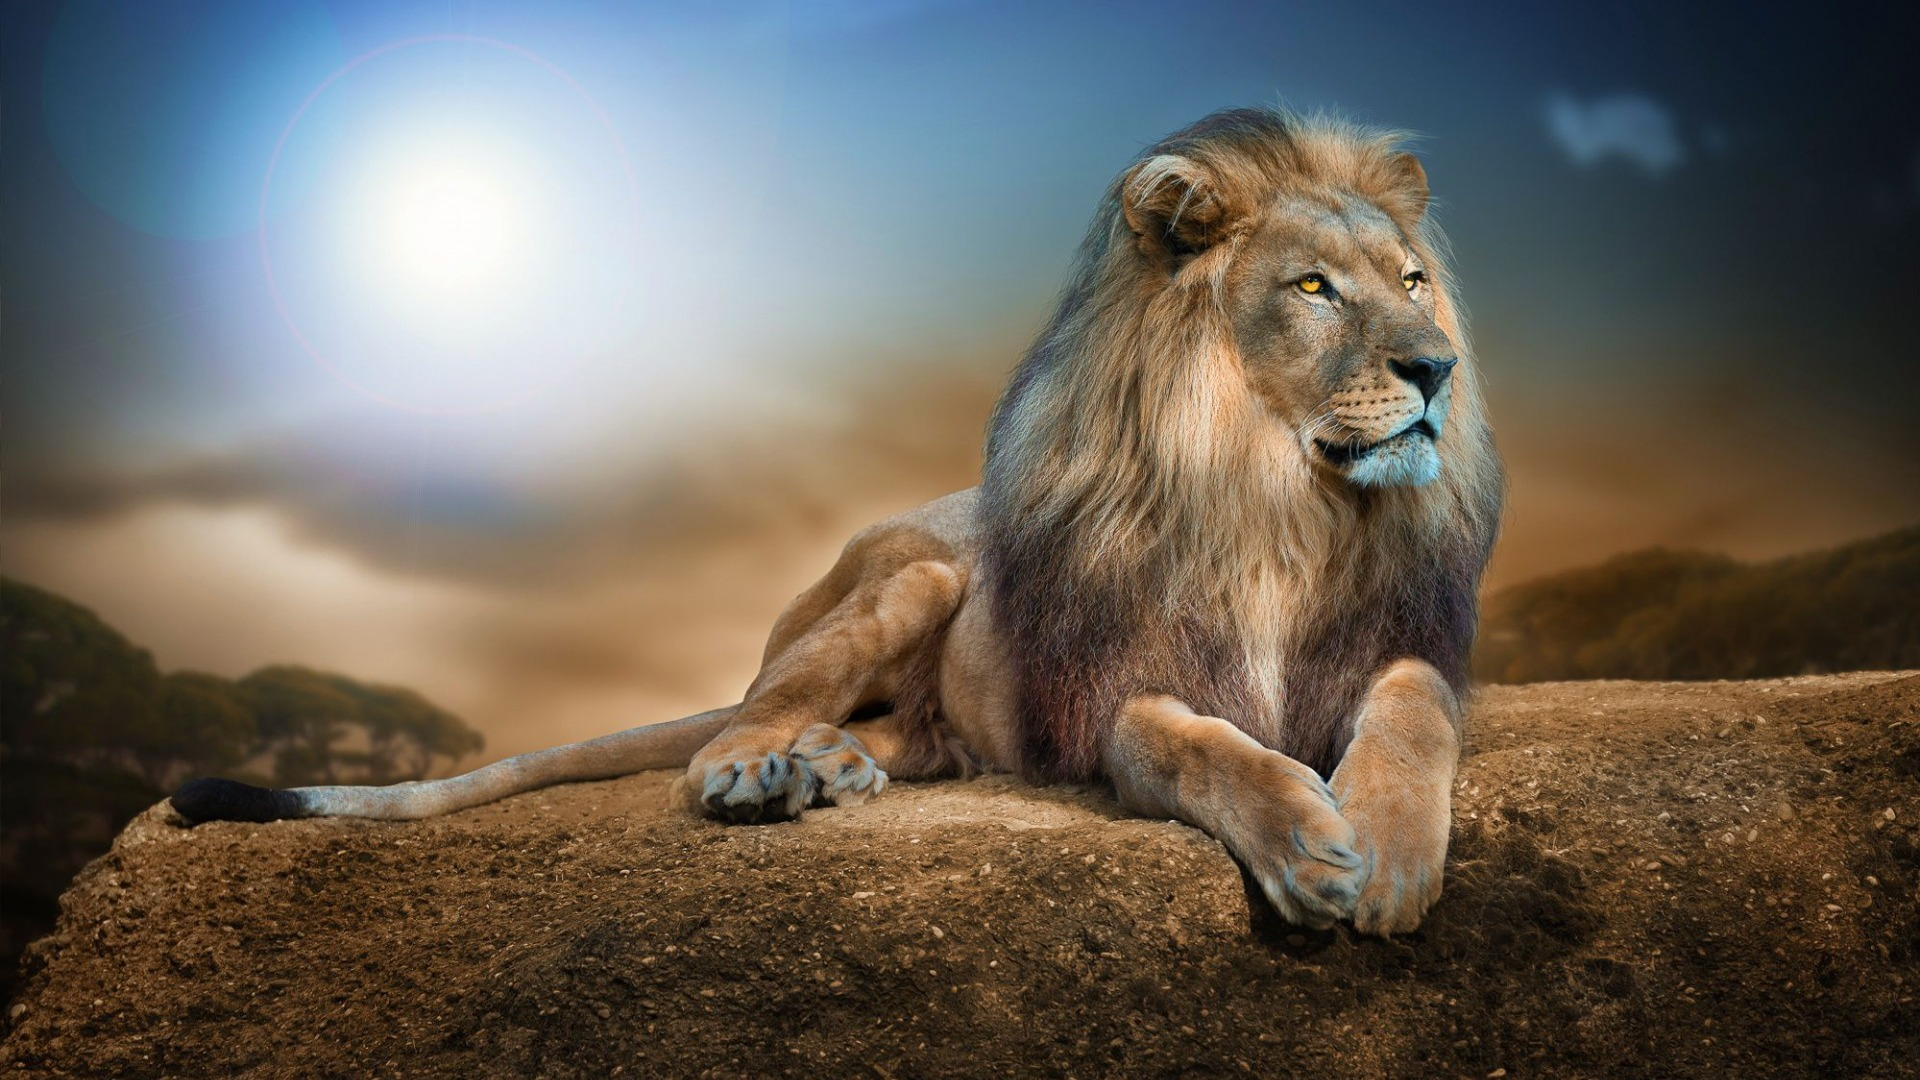 1920x1080 lion 2 laptop full hd 1080p hd 4k wallpapers, images